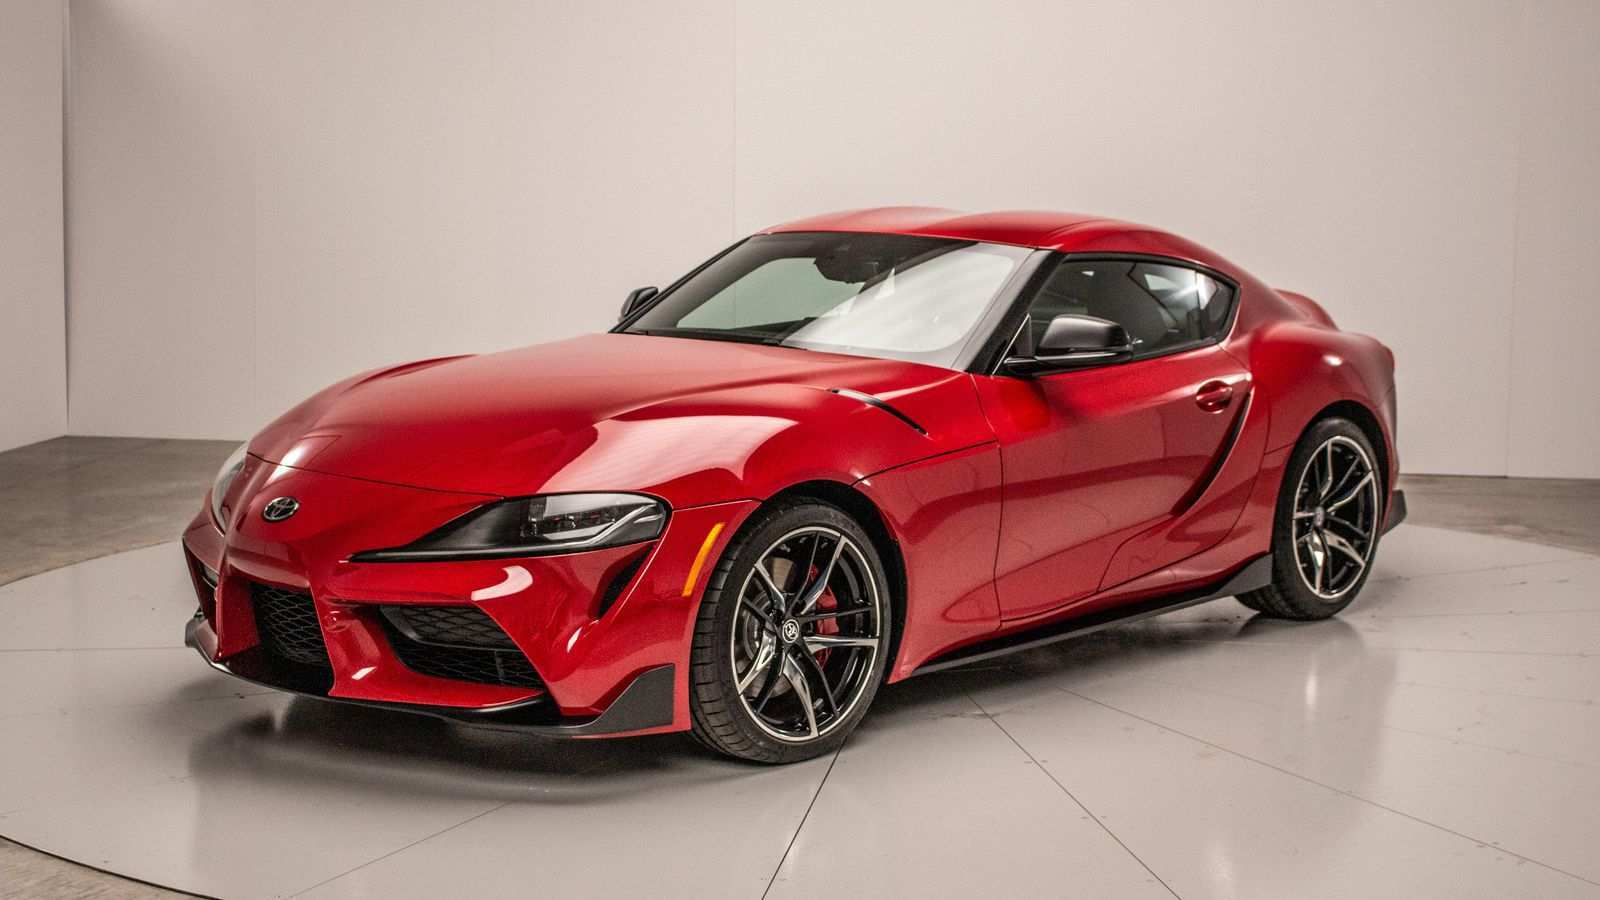 93 New Price Of 2020 Toyota Supra Engine